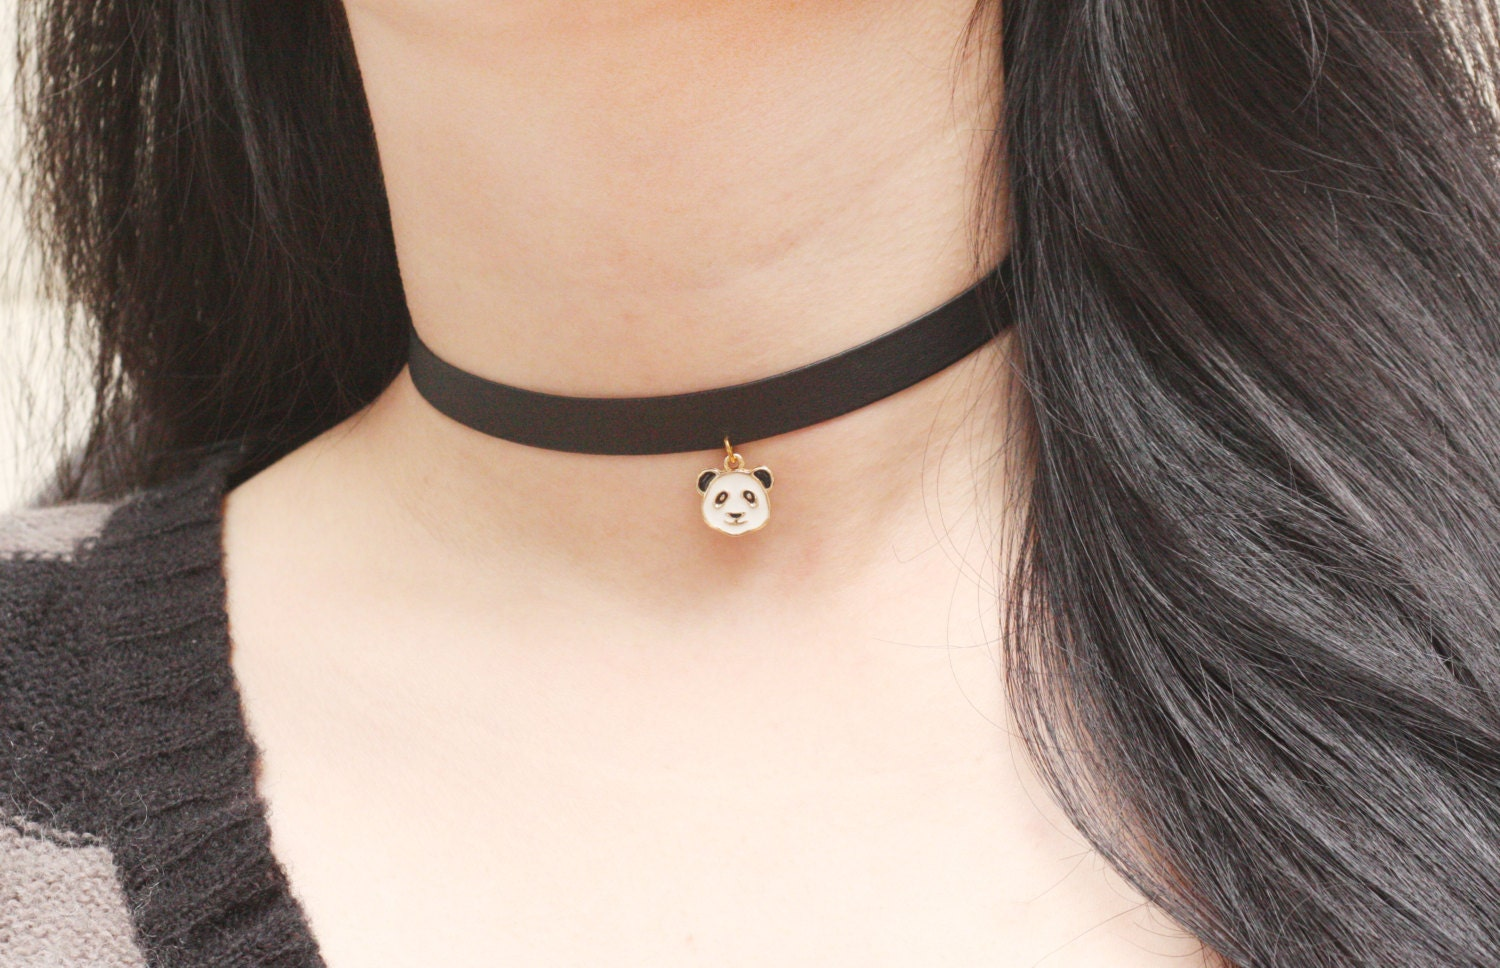 9 Stylish and Cute Chokers for Girls in Trend